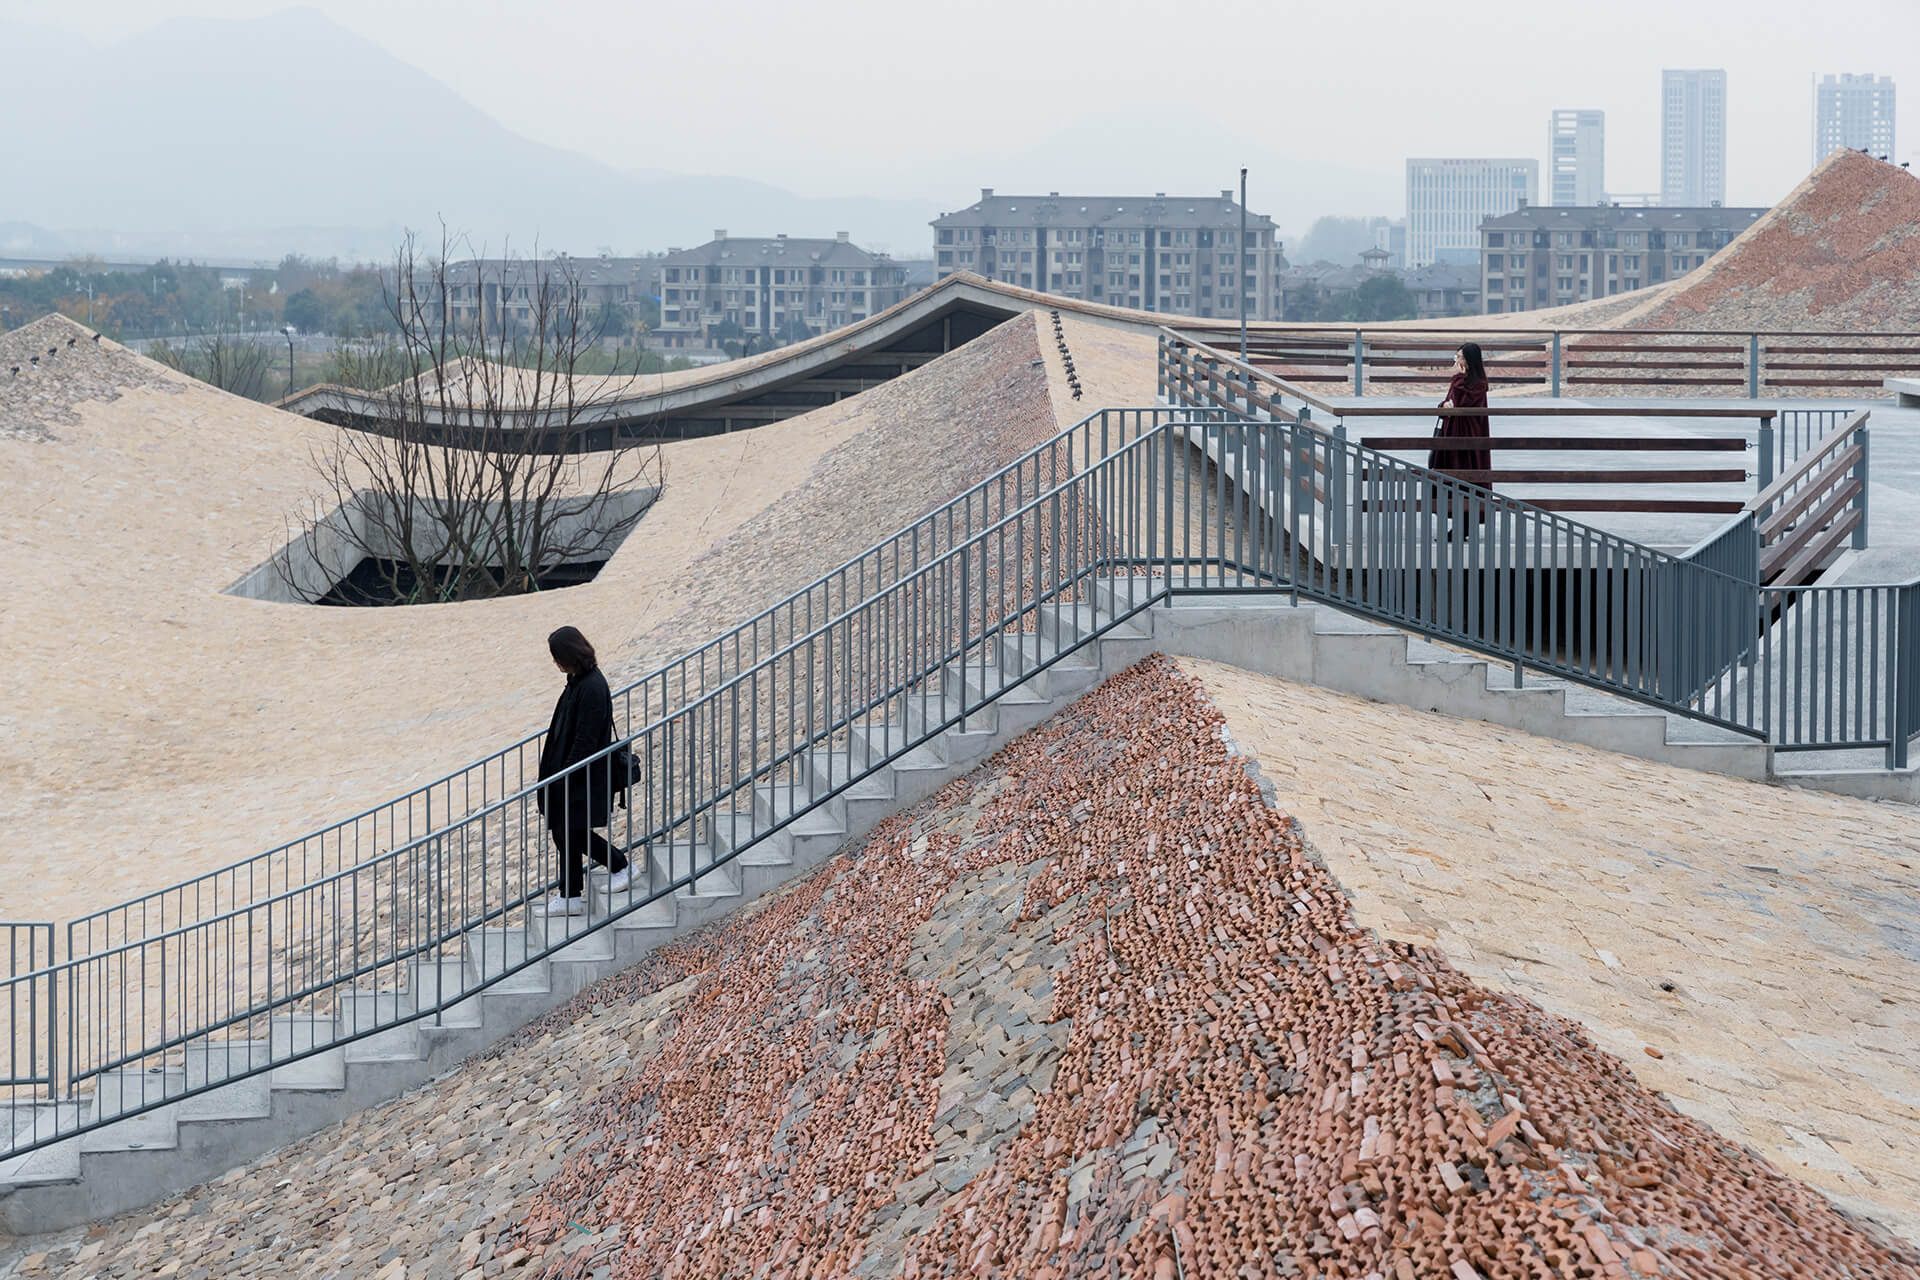 Fuyang Cultual Complex, Fuyang, Anhui province, 2017 | Vladimir Belogolovsky in conversation with architect WANG Shu | STIRworld